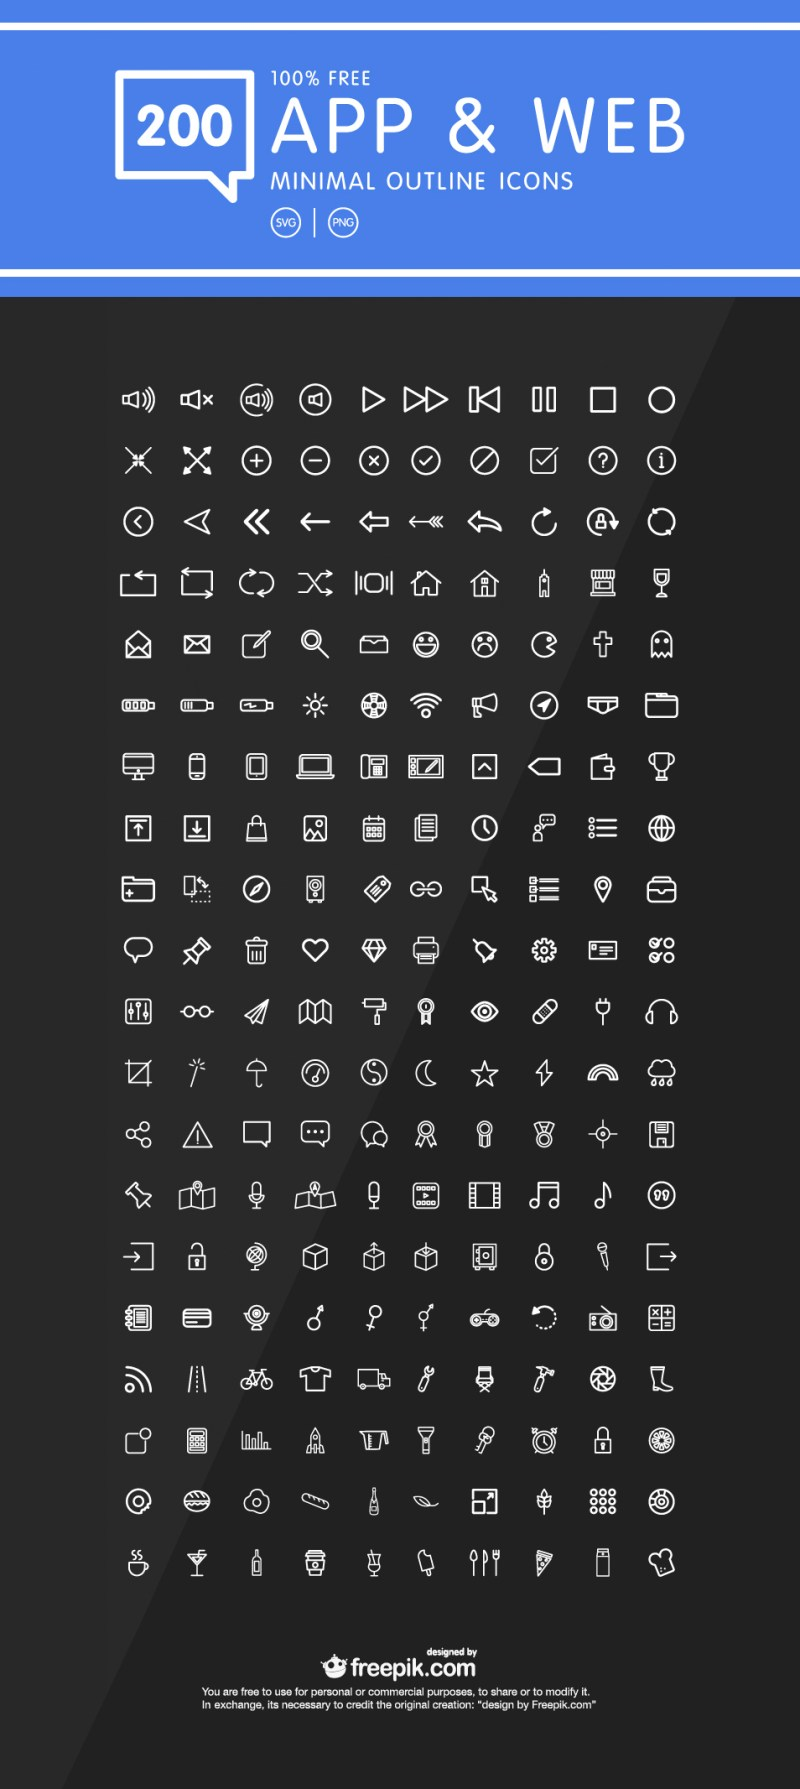 App & Web Outline Icons